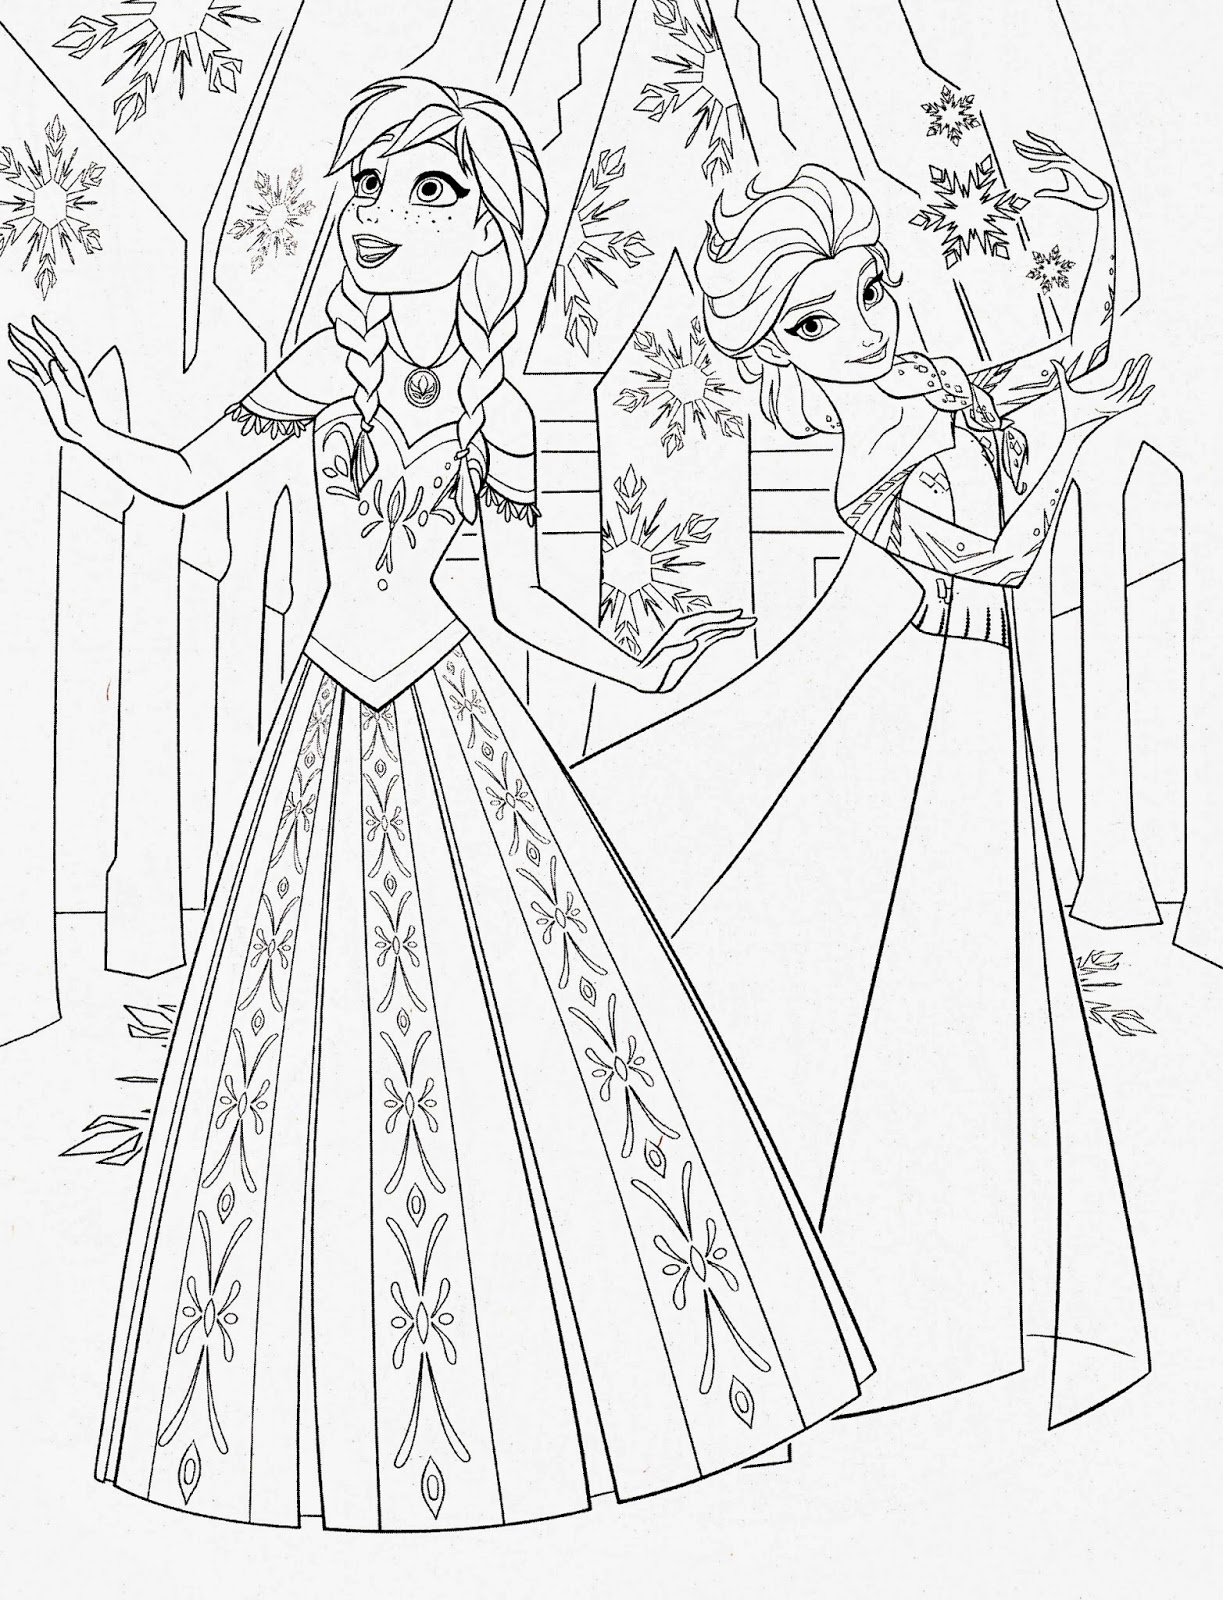 Disney coloring pages adults - Di Disney Princess Coloring Pages Adults Elsa Anna Frozen Filmprincesses Filminspector Com